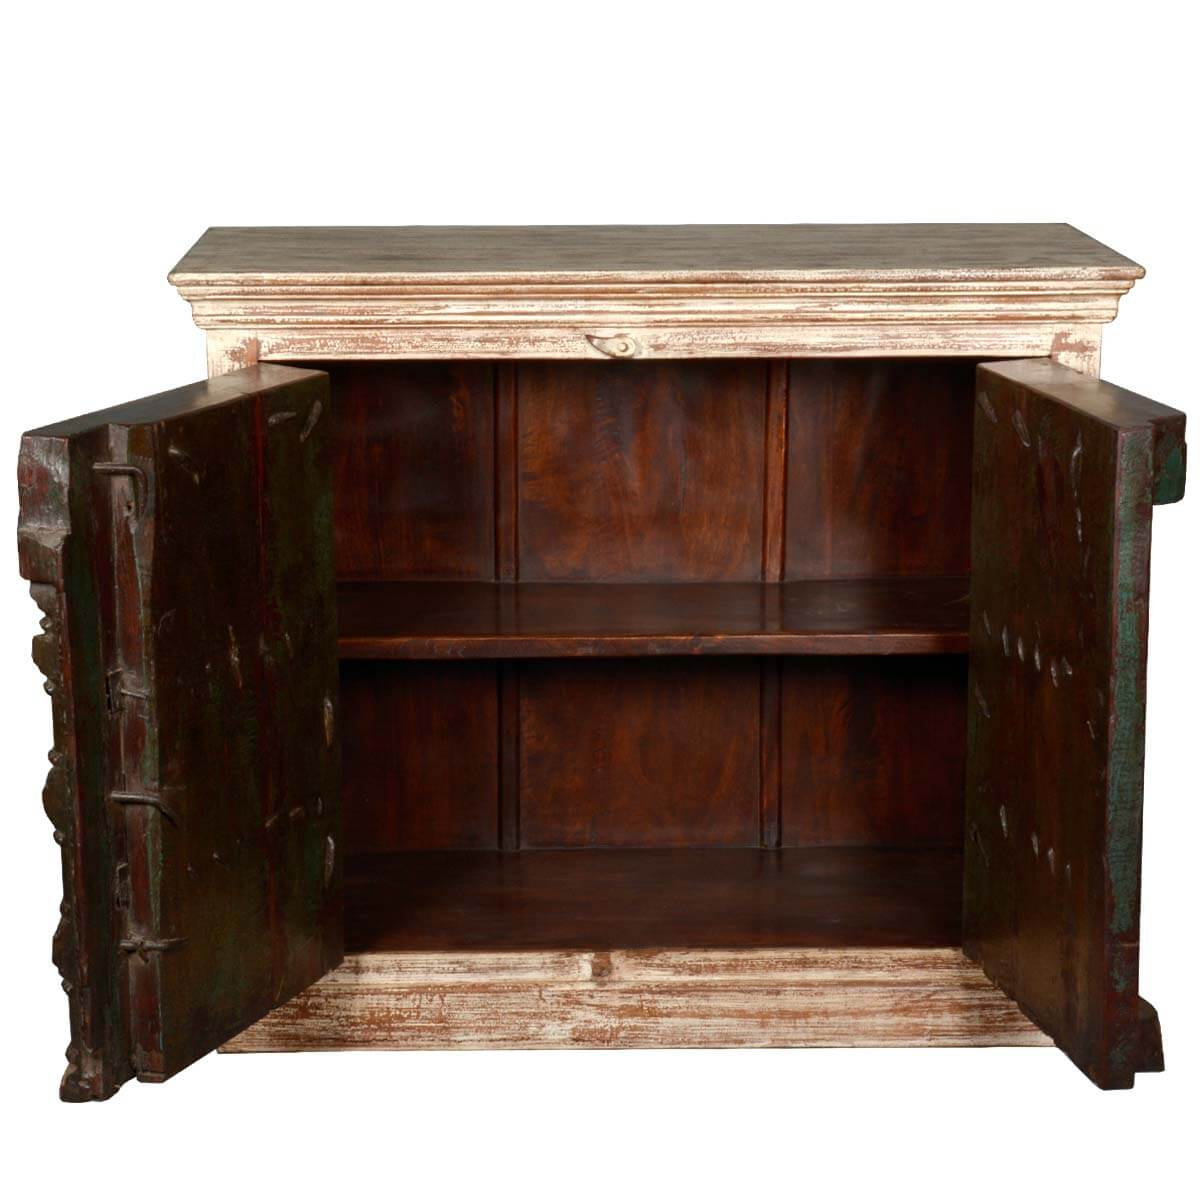 Marvelous photograph of  Reclaimed Wood Furniture Gothic Antique Rustic Sideboard Cabinet with #AD7A1E color and 1200x1200 pixels